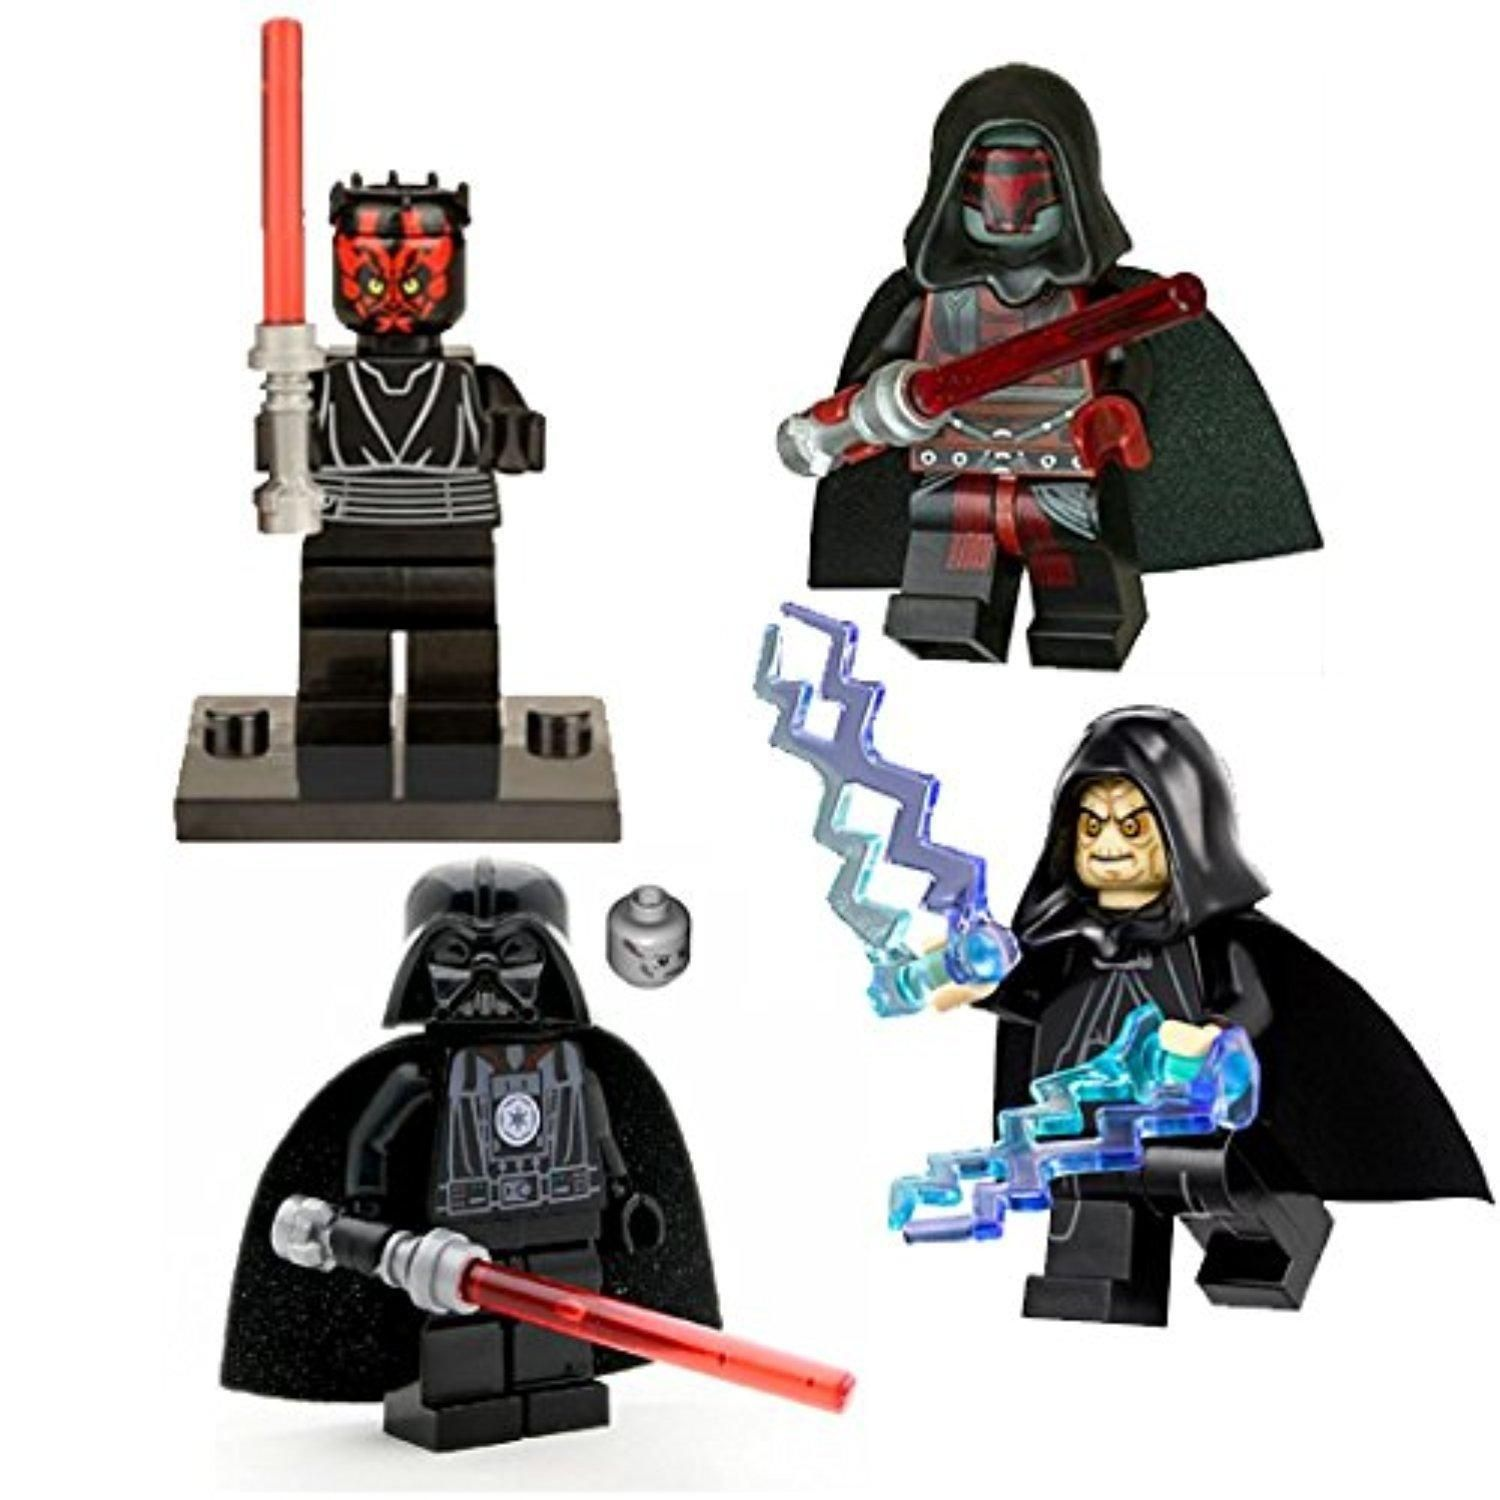 LEGO Compatible Minifigures Sith Lords Darth Vader, Darth ...